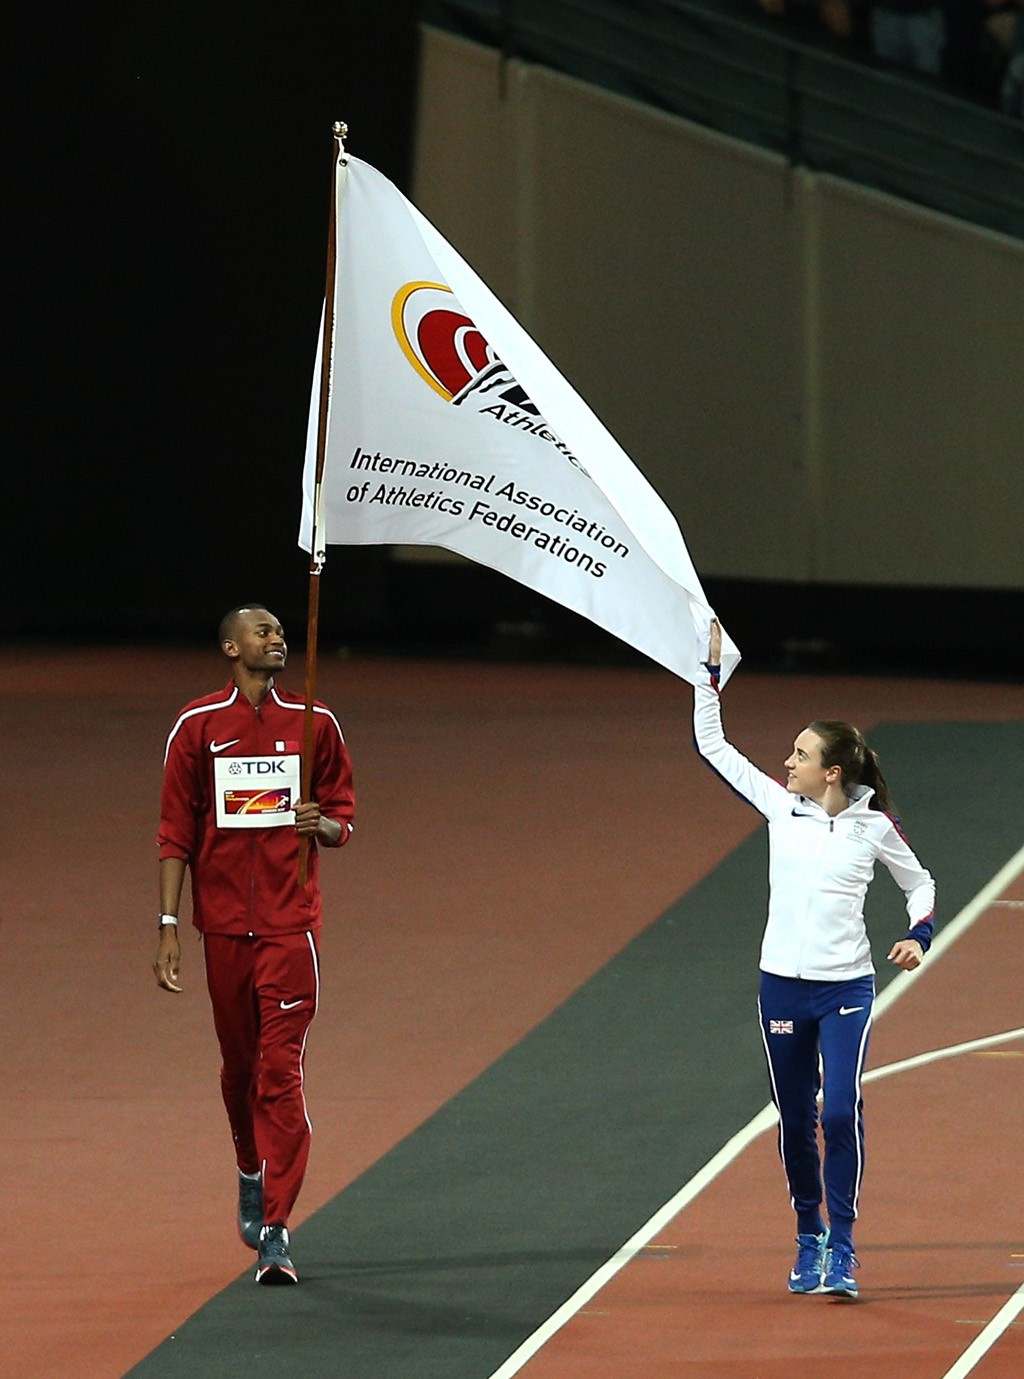 Dr Thani Al Kuwari, President of the QAF, receives IAAF flag from Lord Coe, President IAAF alongside Mutaz Barshim